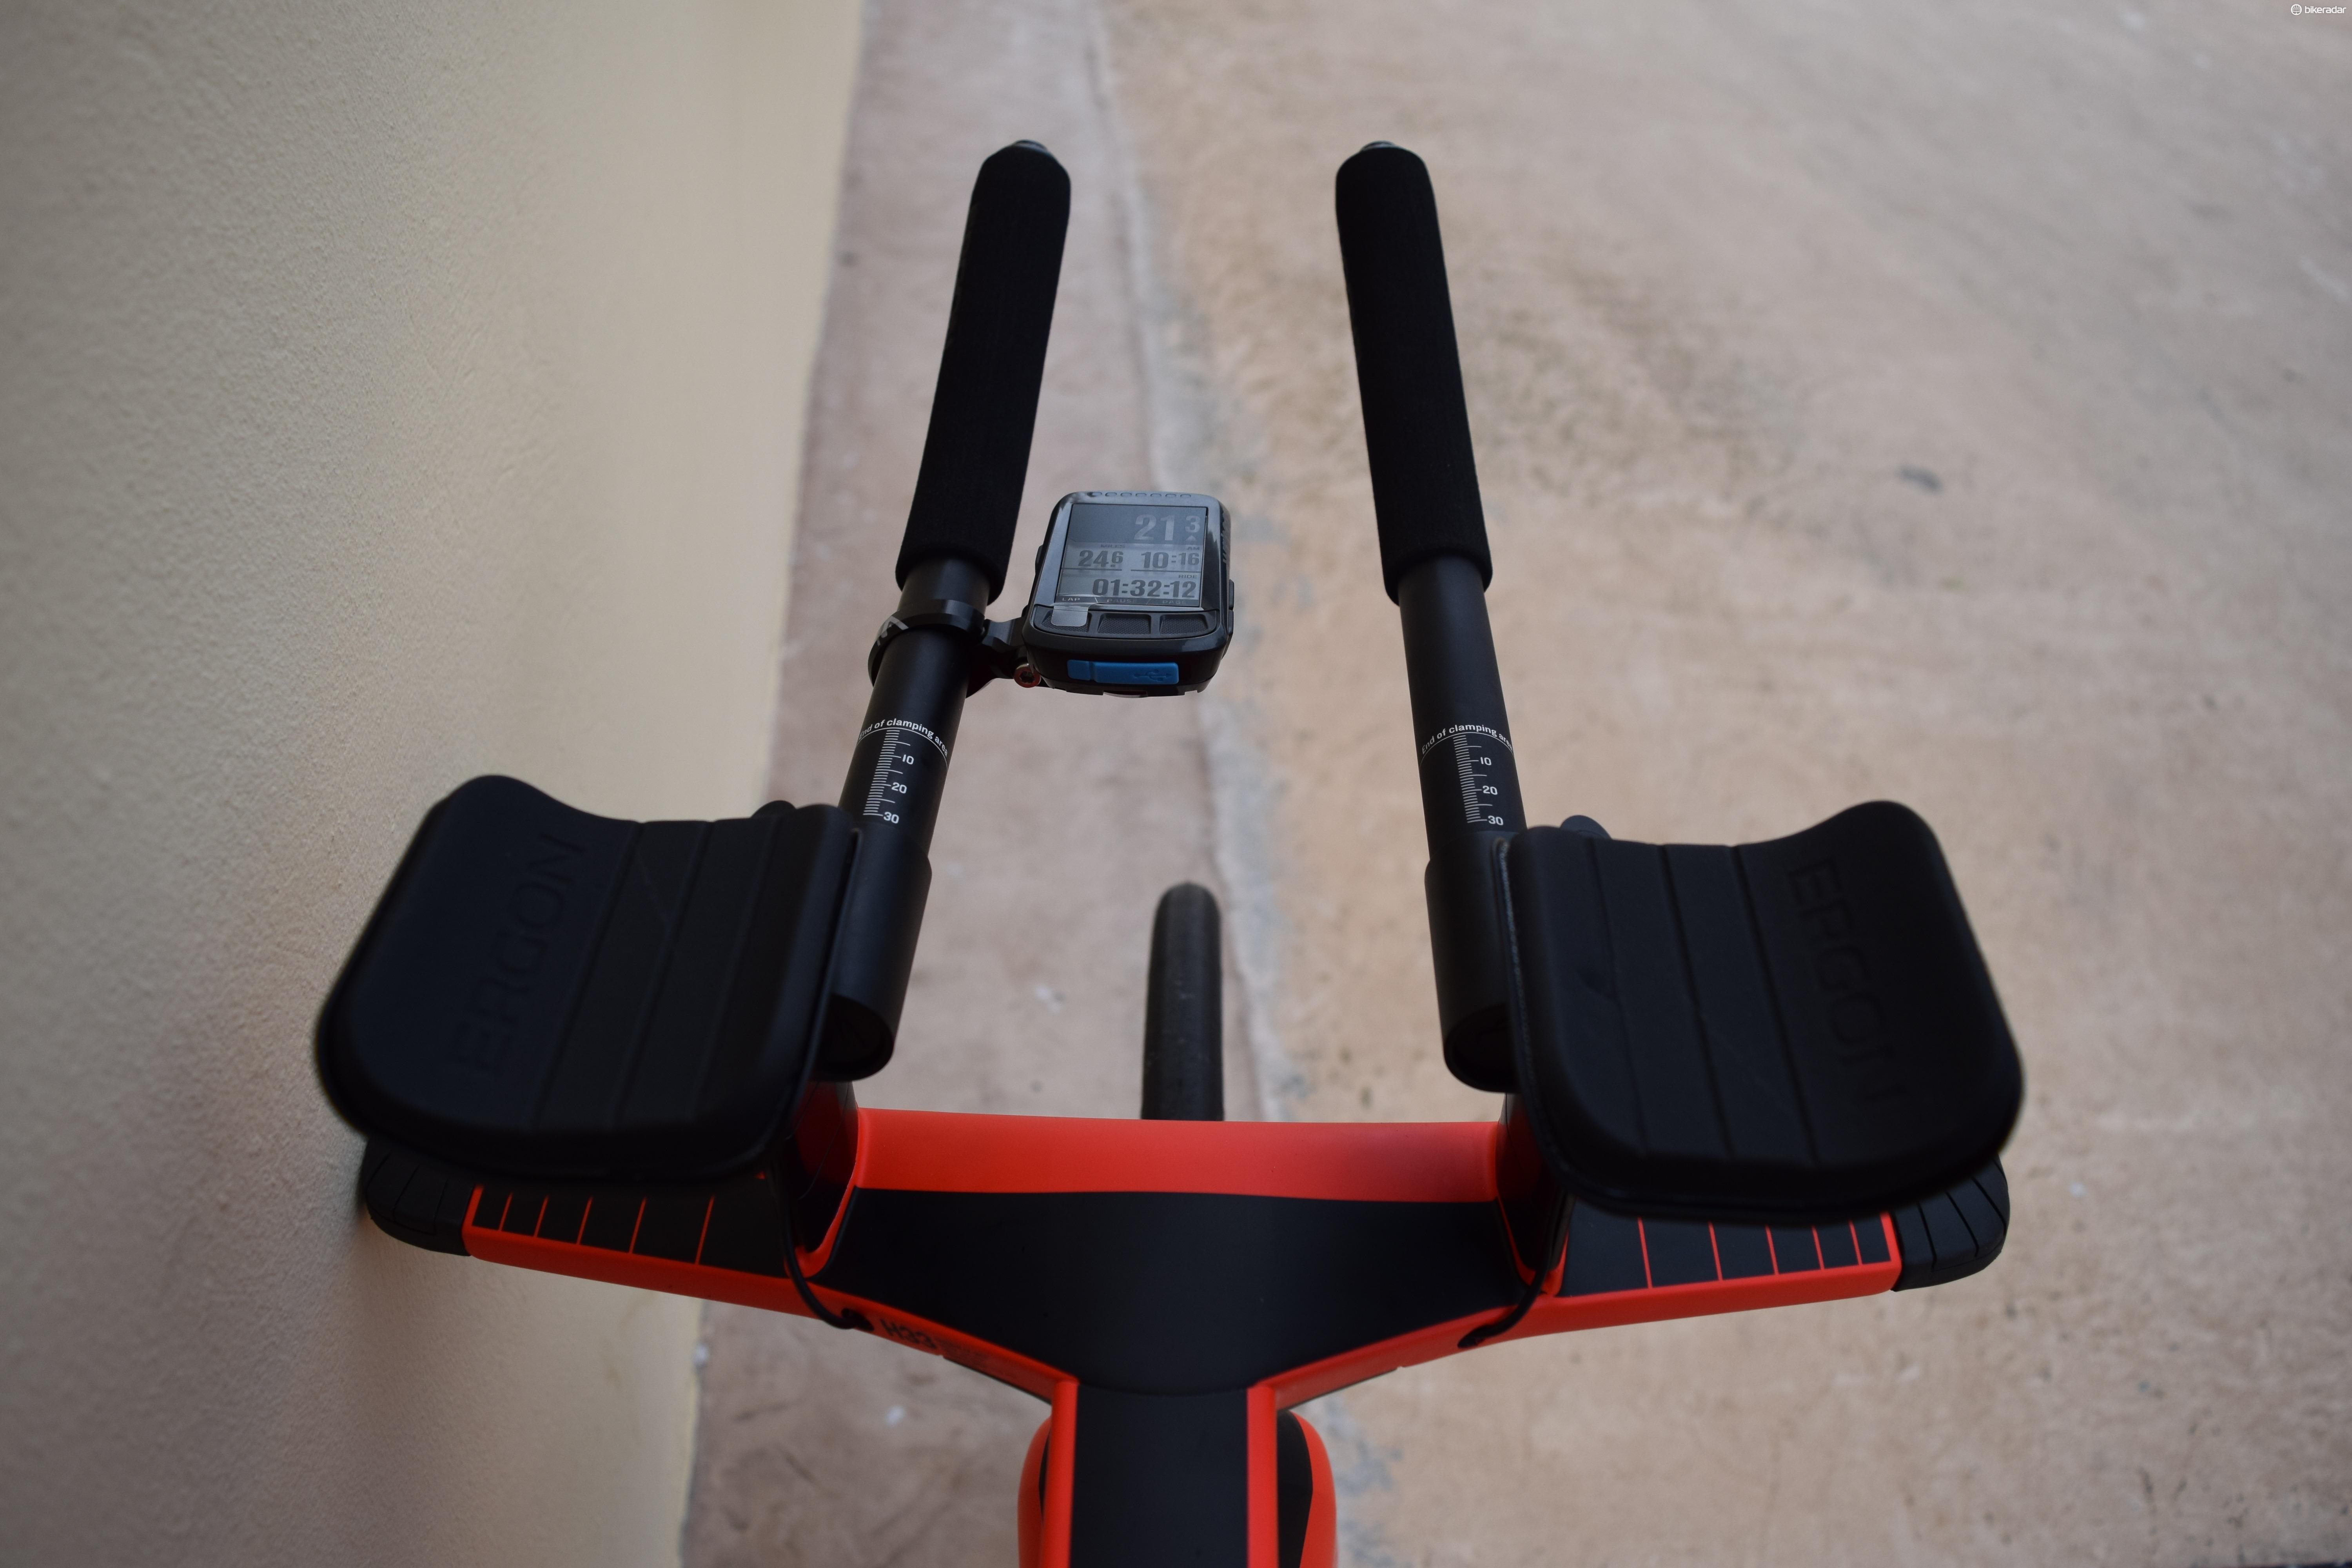 SRAM eTap Blips sit at the end of the handlebar extensions